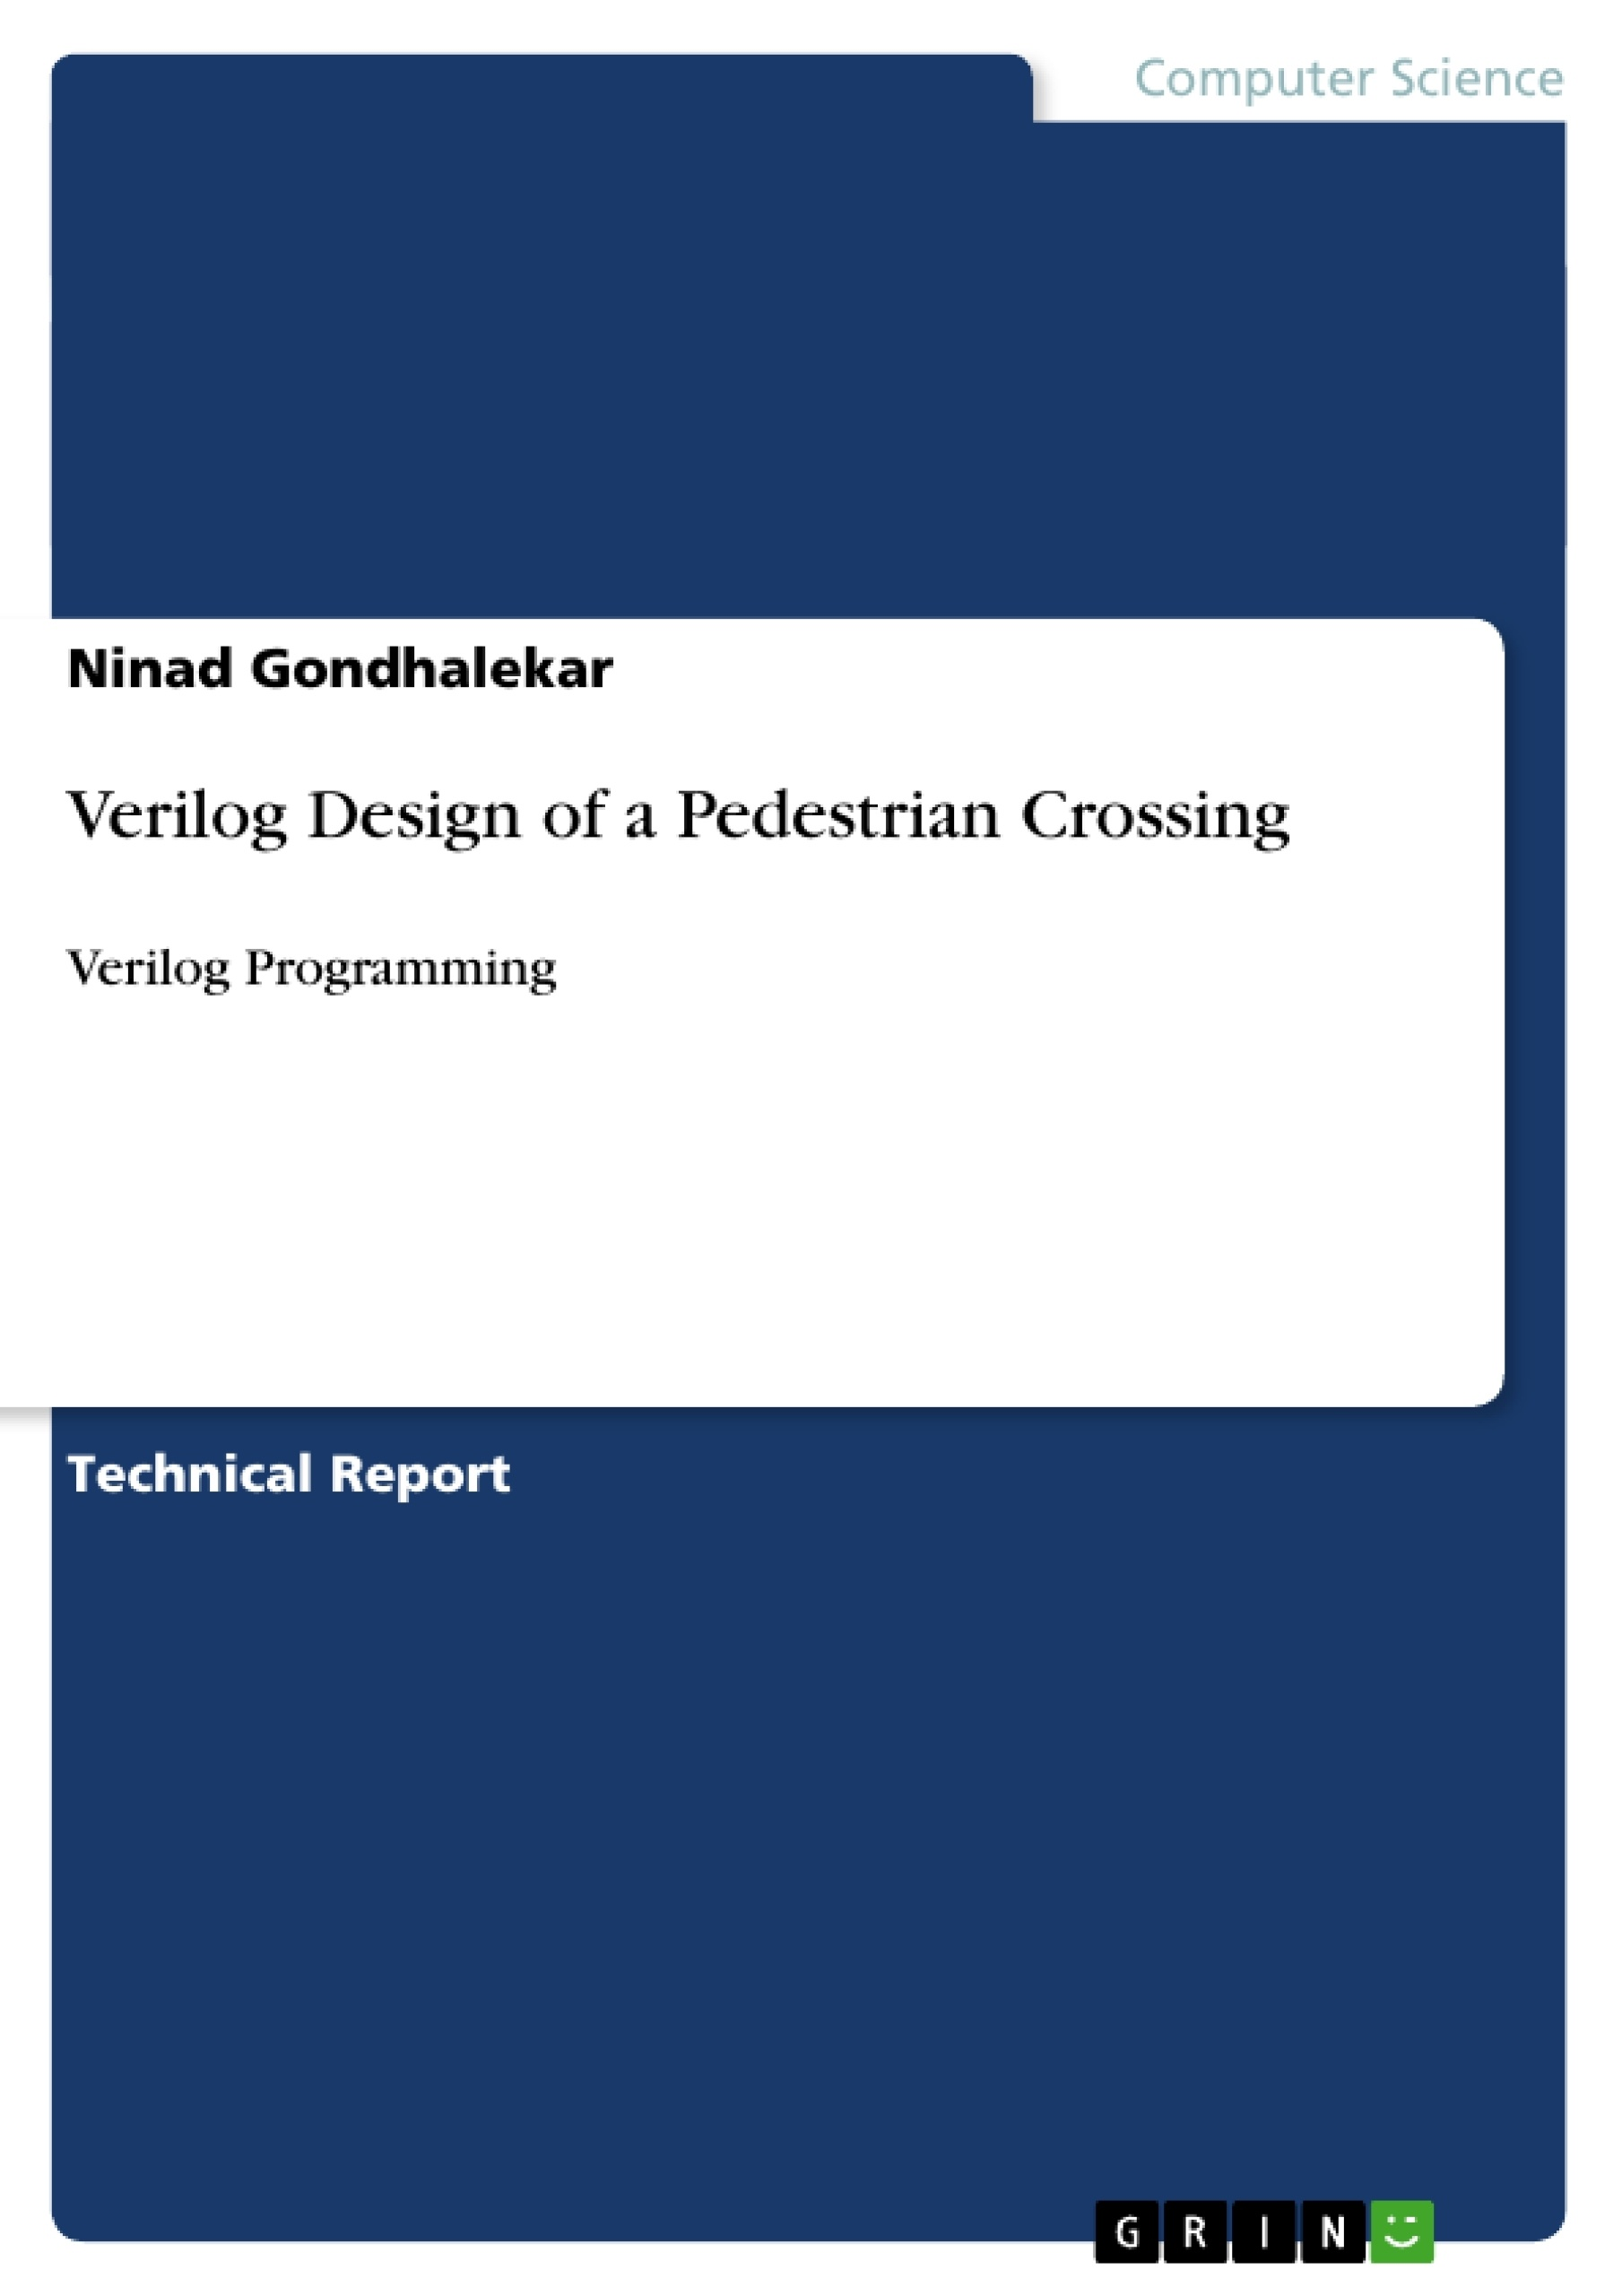 GRIN - Verilog Design of a Pedestrian Crossing